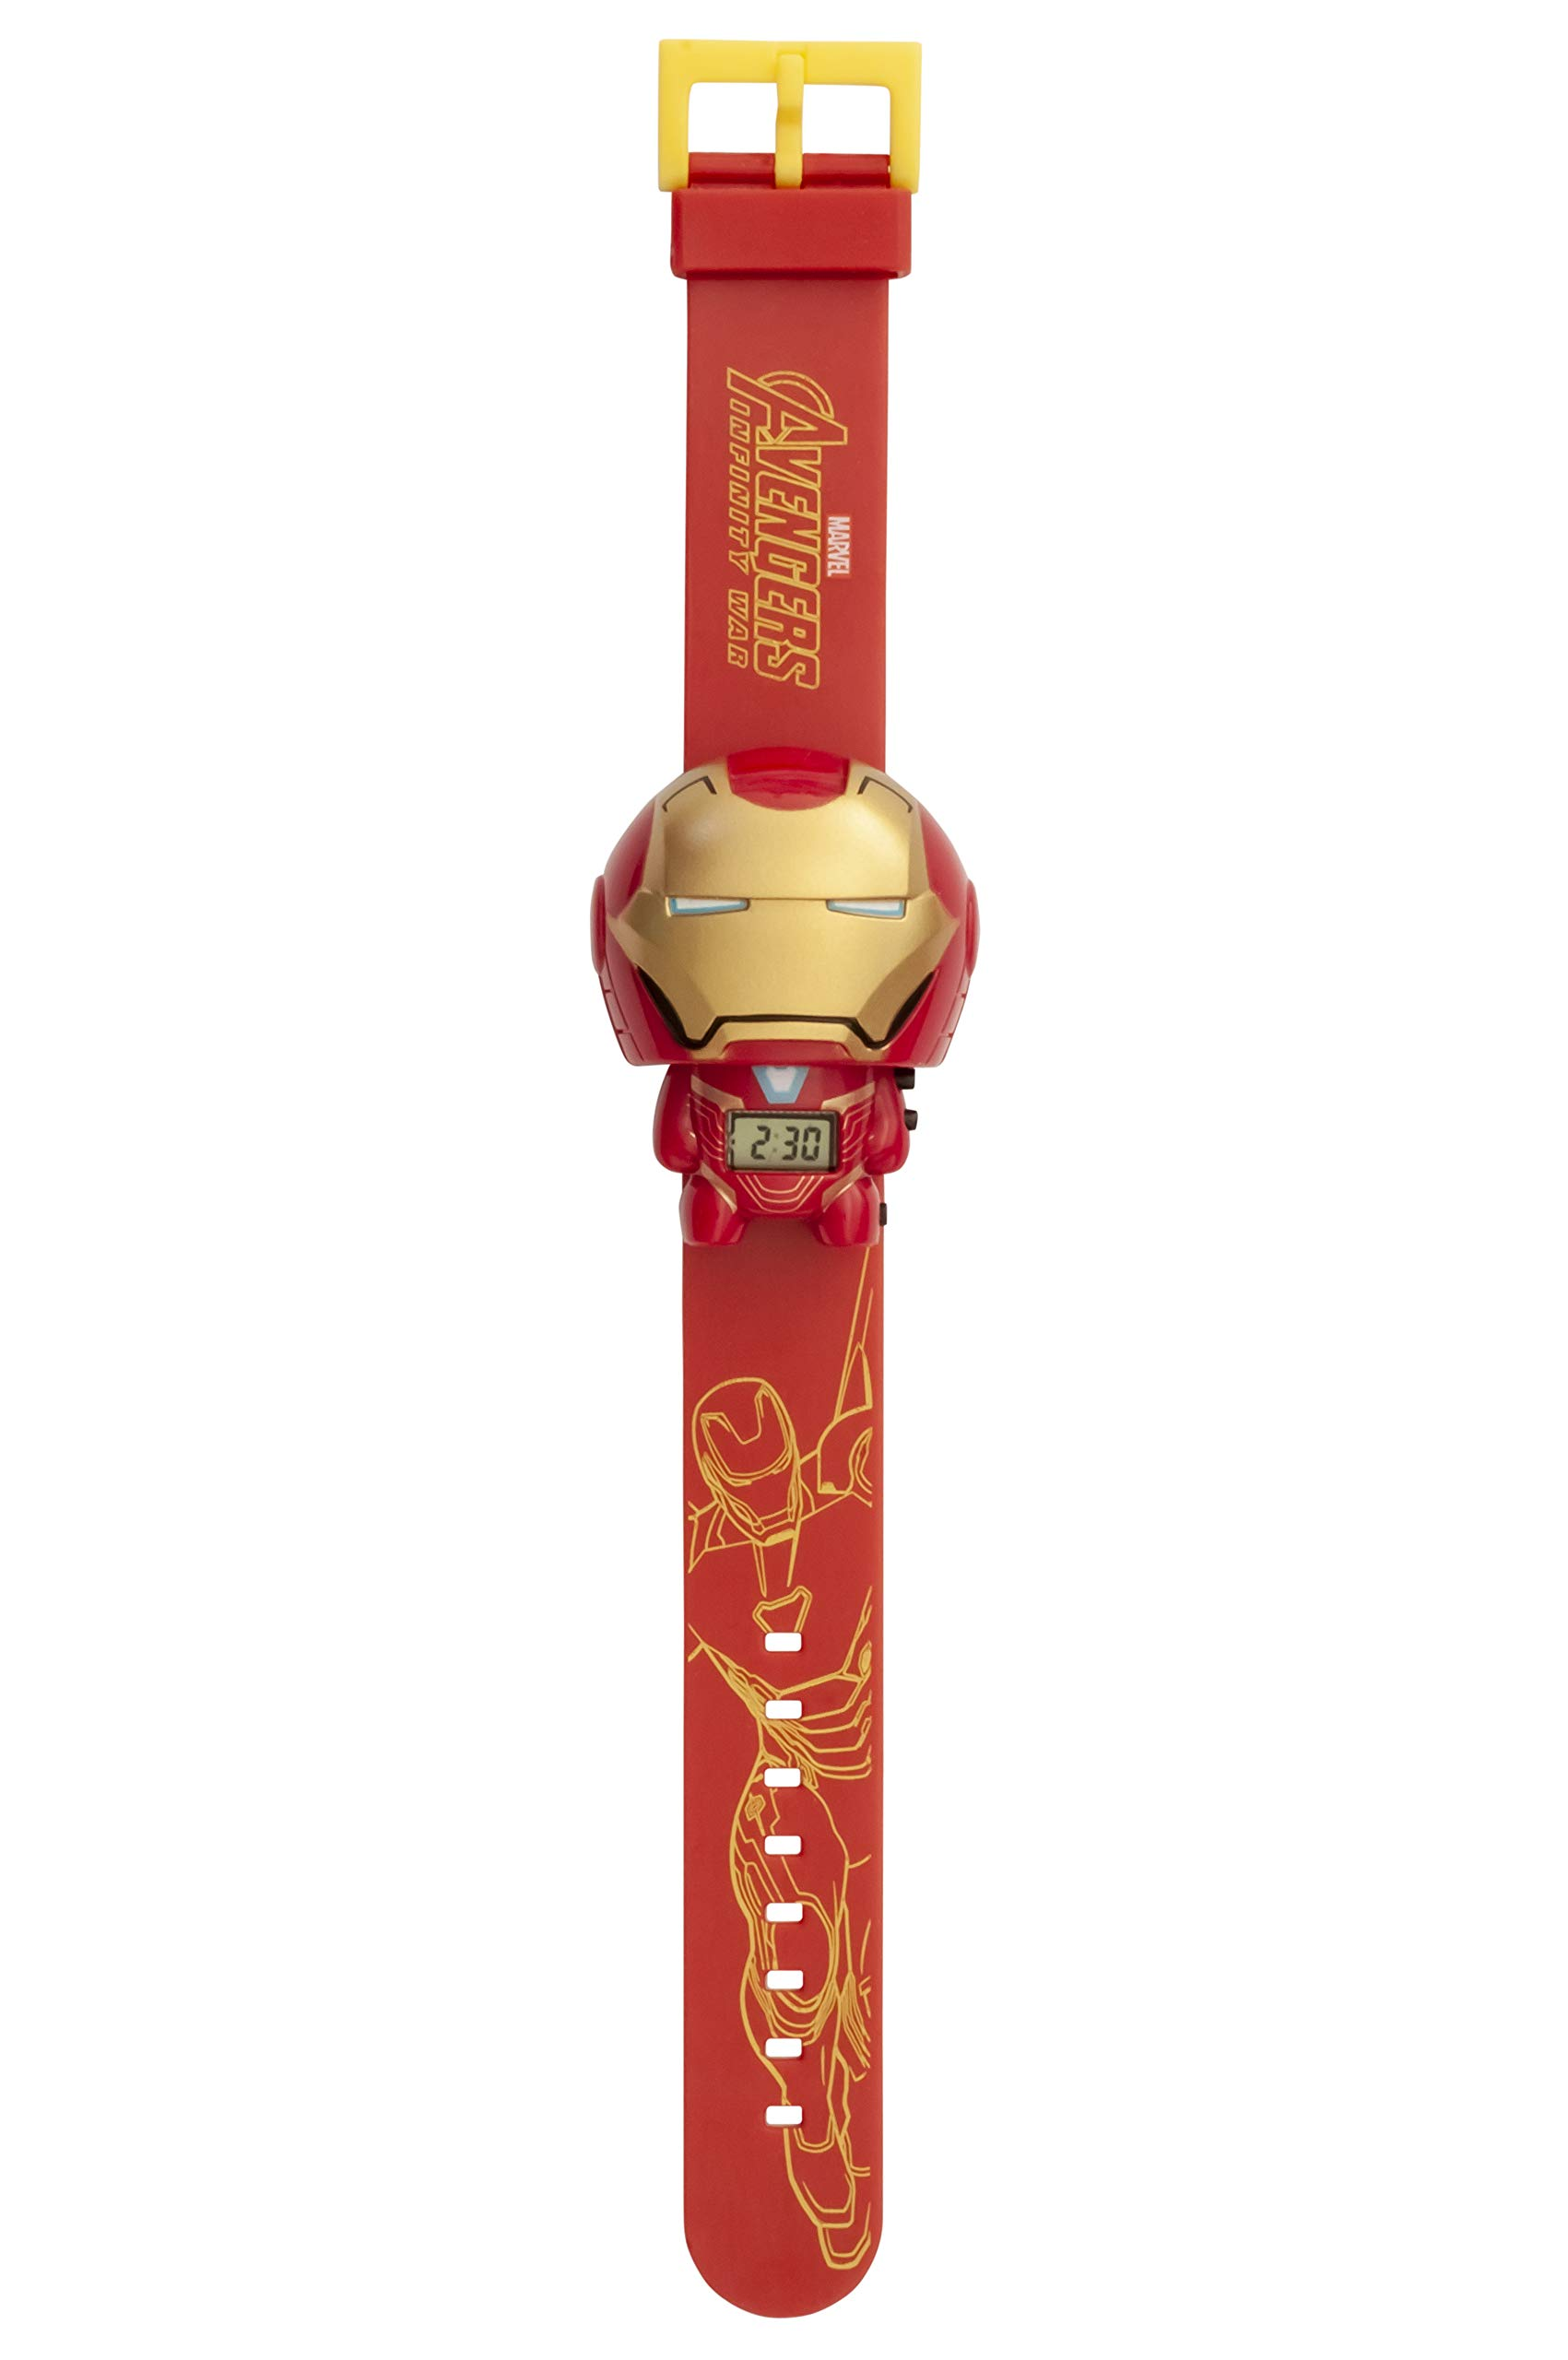 BulbBotz Marvel 2021852 Avengers: Infinity War Iron Man Kids Light up Watch | Red/Gold | Plastic | Digital | LCD Display| boy Girl | Official by Bulb Botz